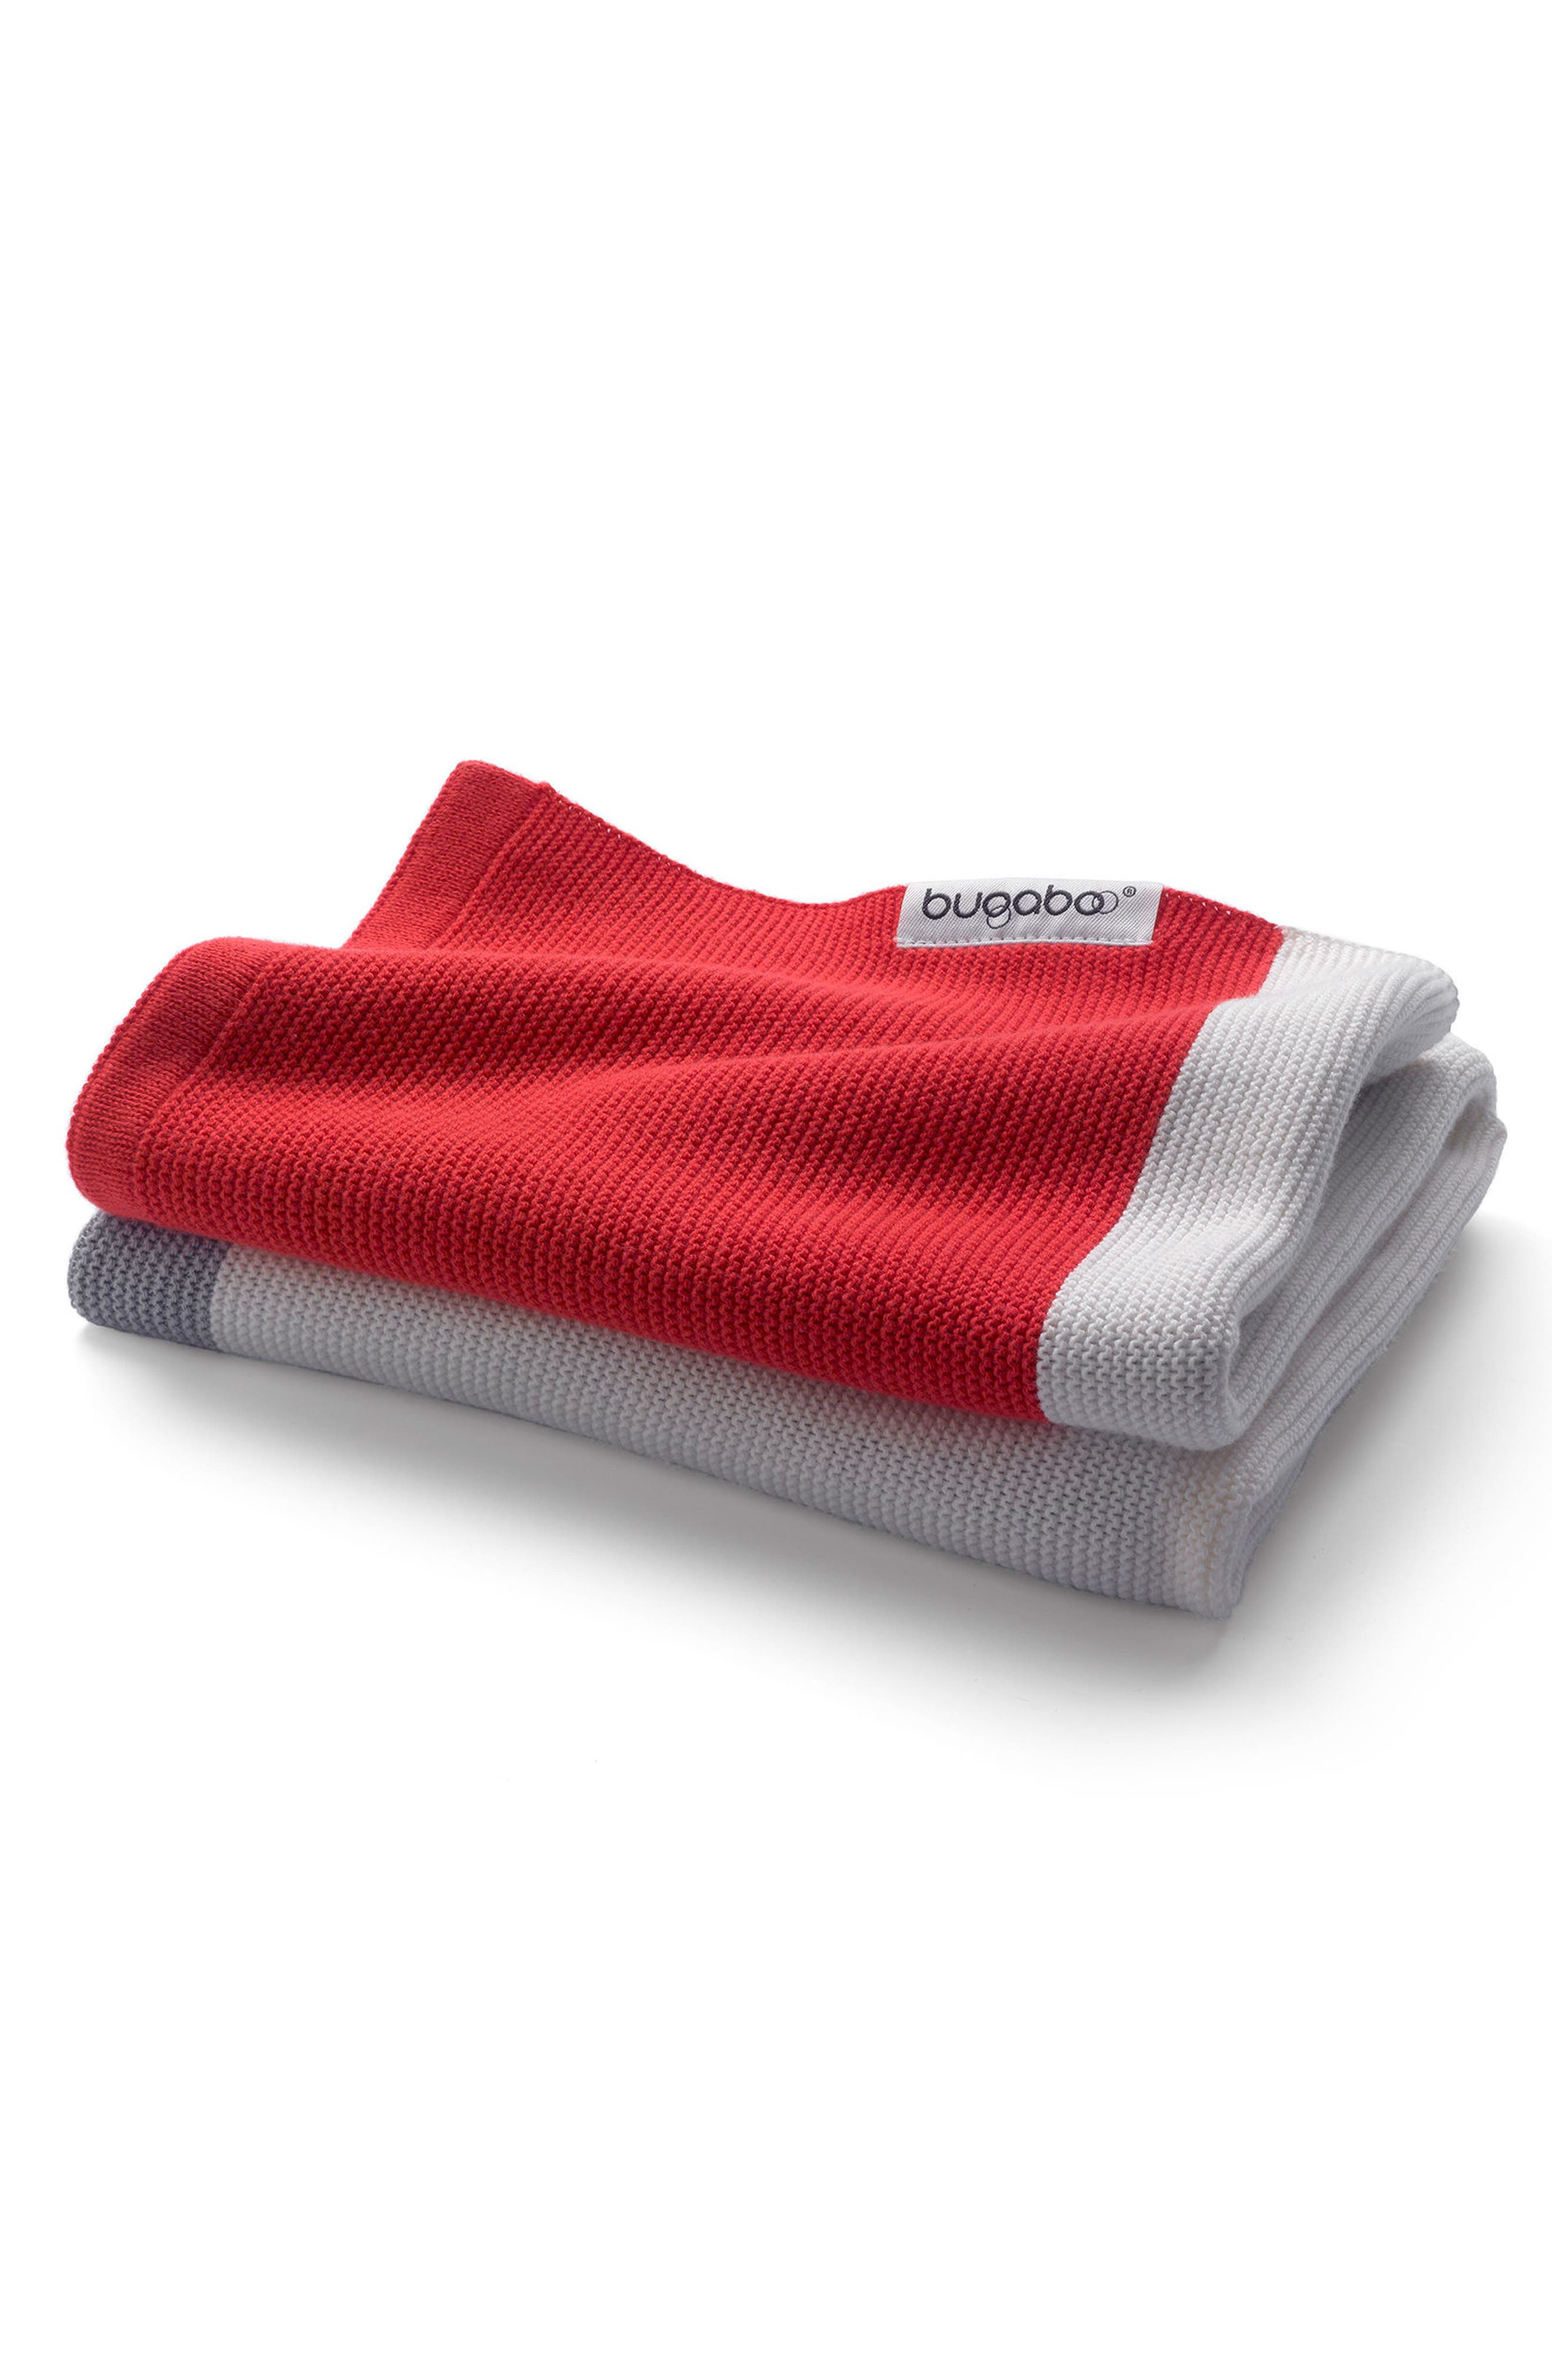 Light Cotton Blanket,                             Main thumbnail 1, color,                             NEON RED